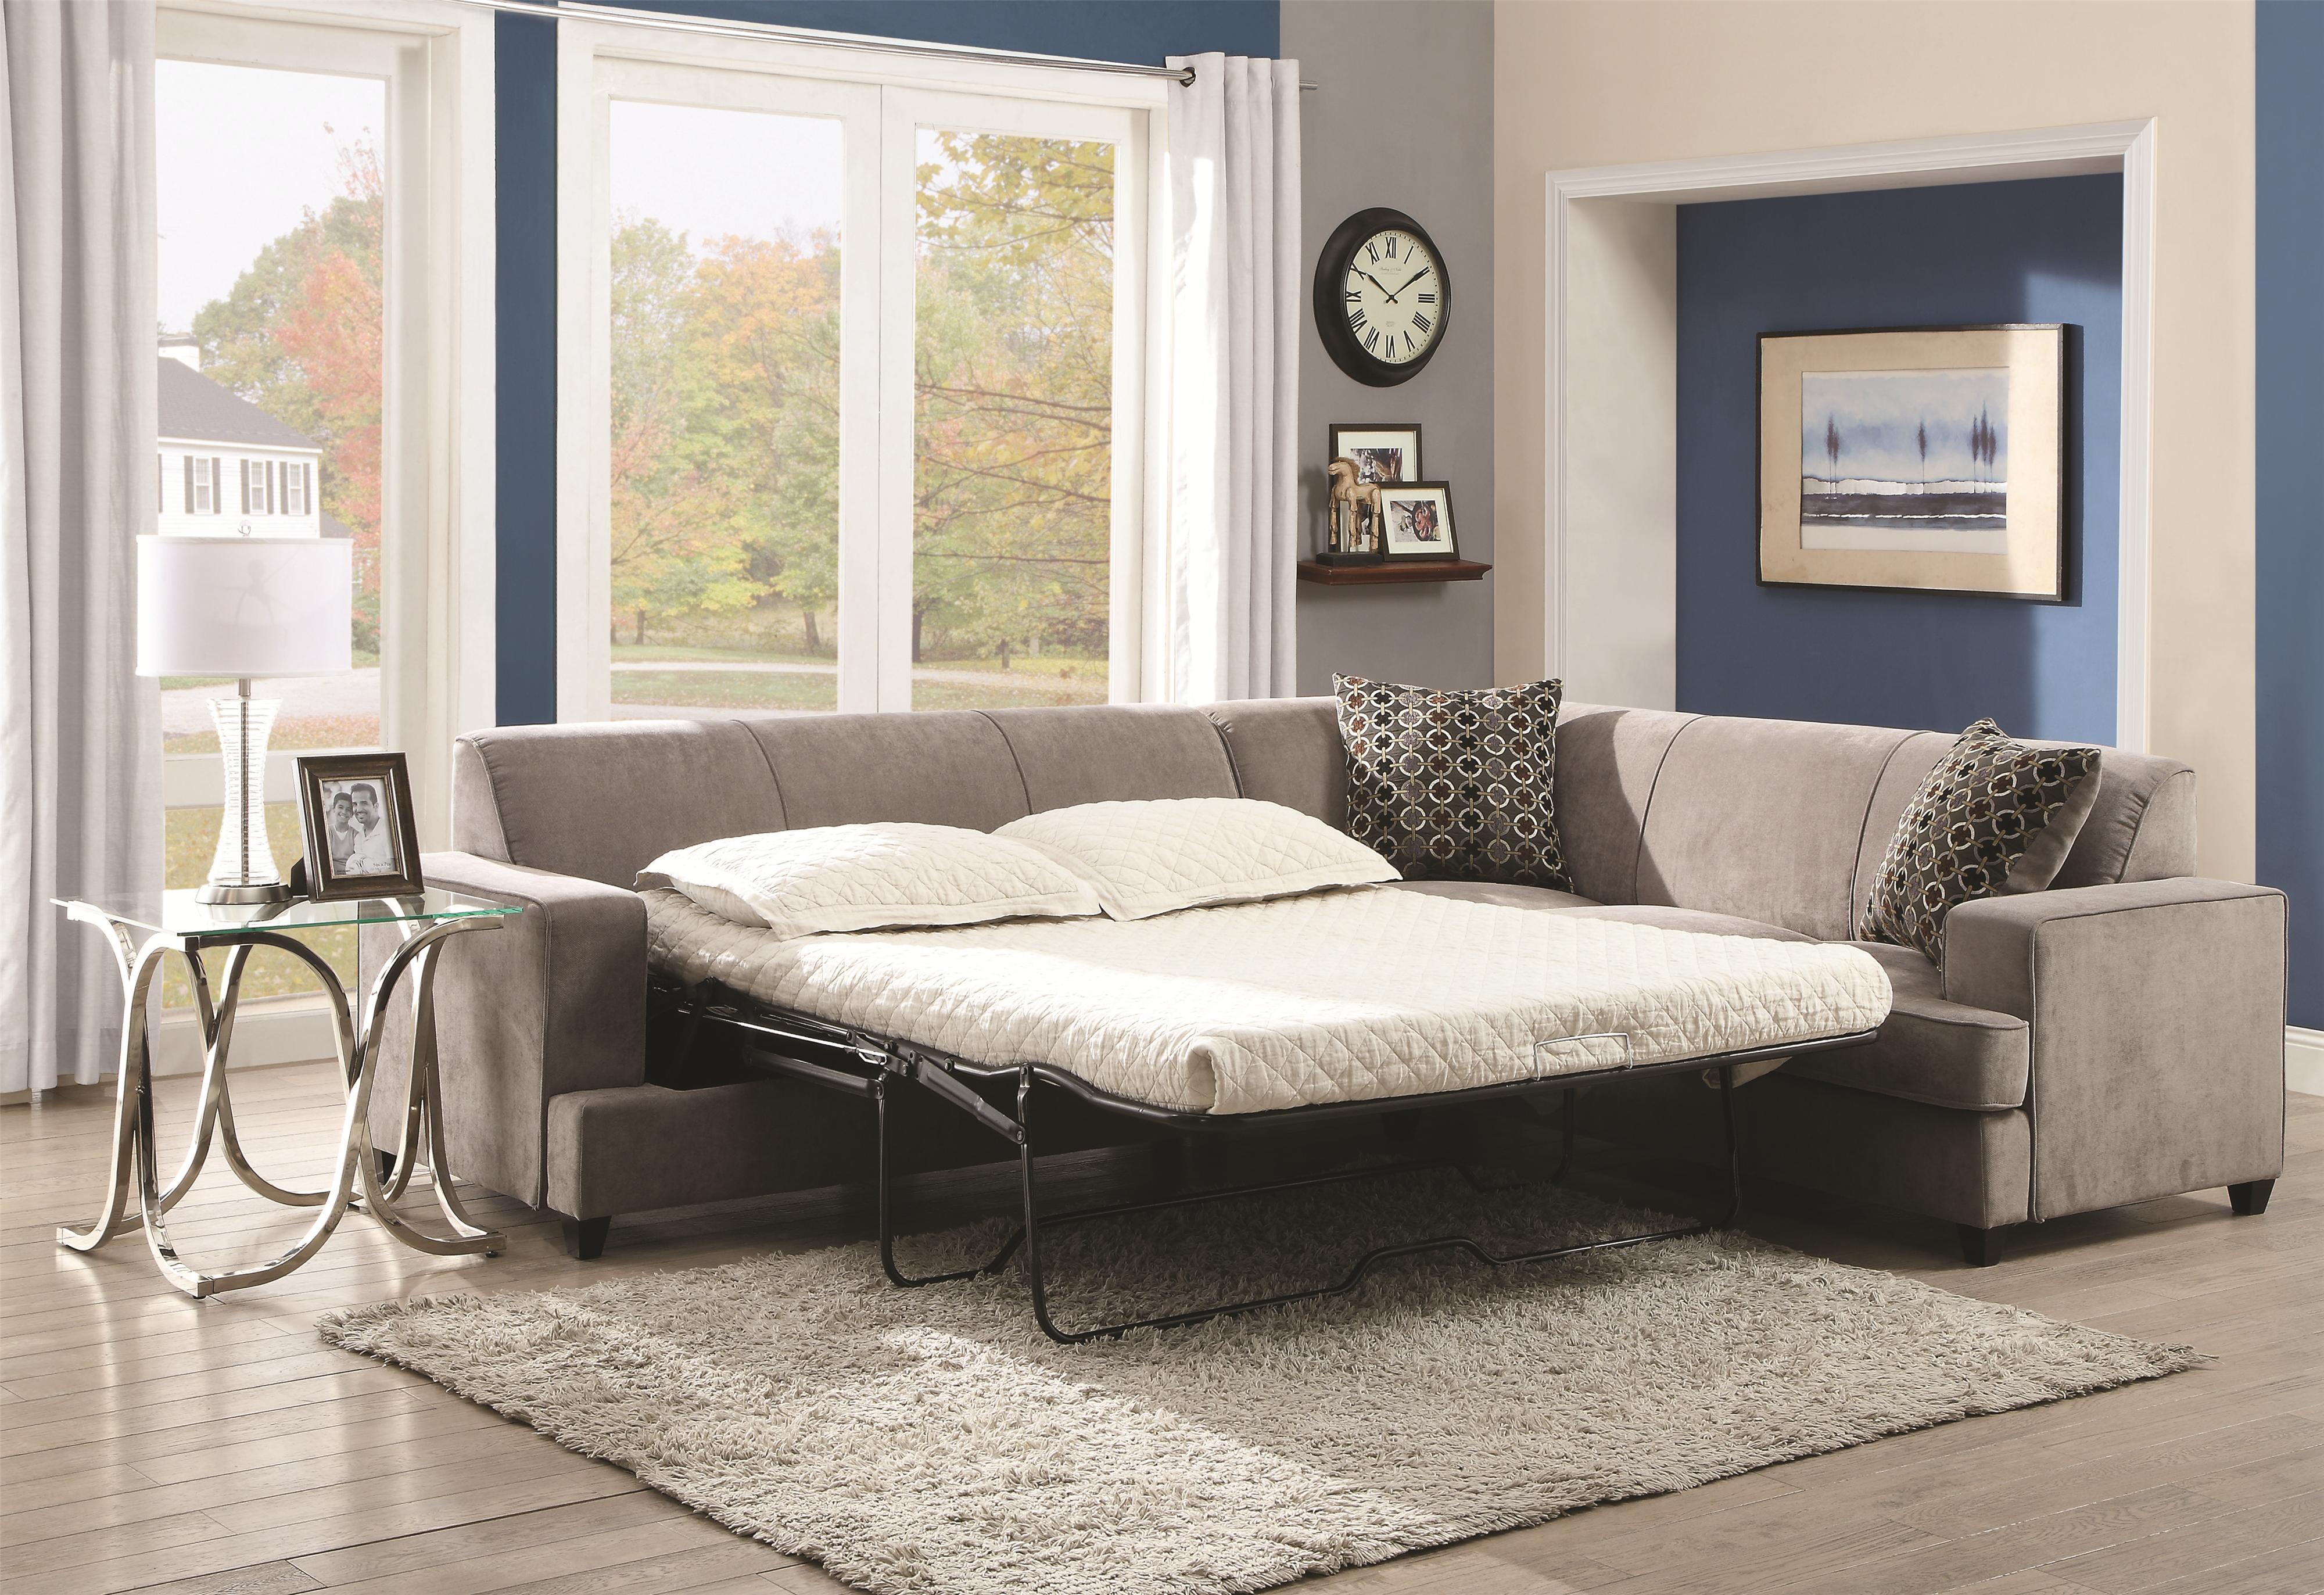 queen left product facing living with sectional athina room sleeper furniture sectionals piece charcoal item bed sofa